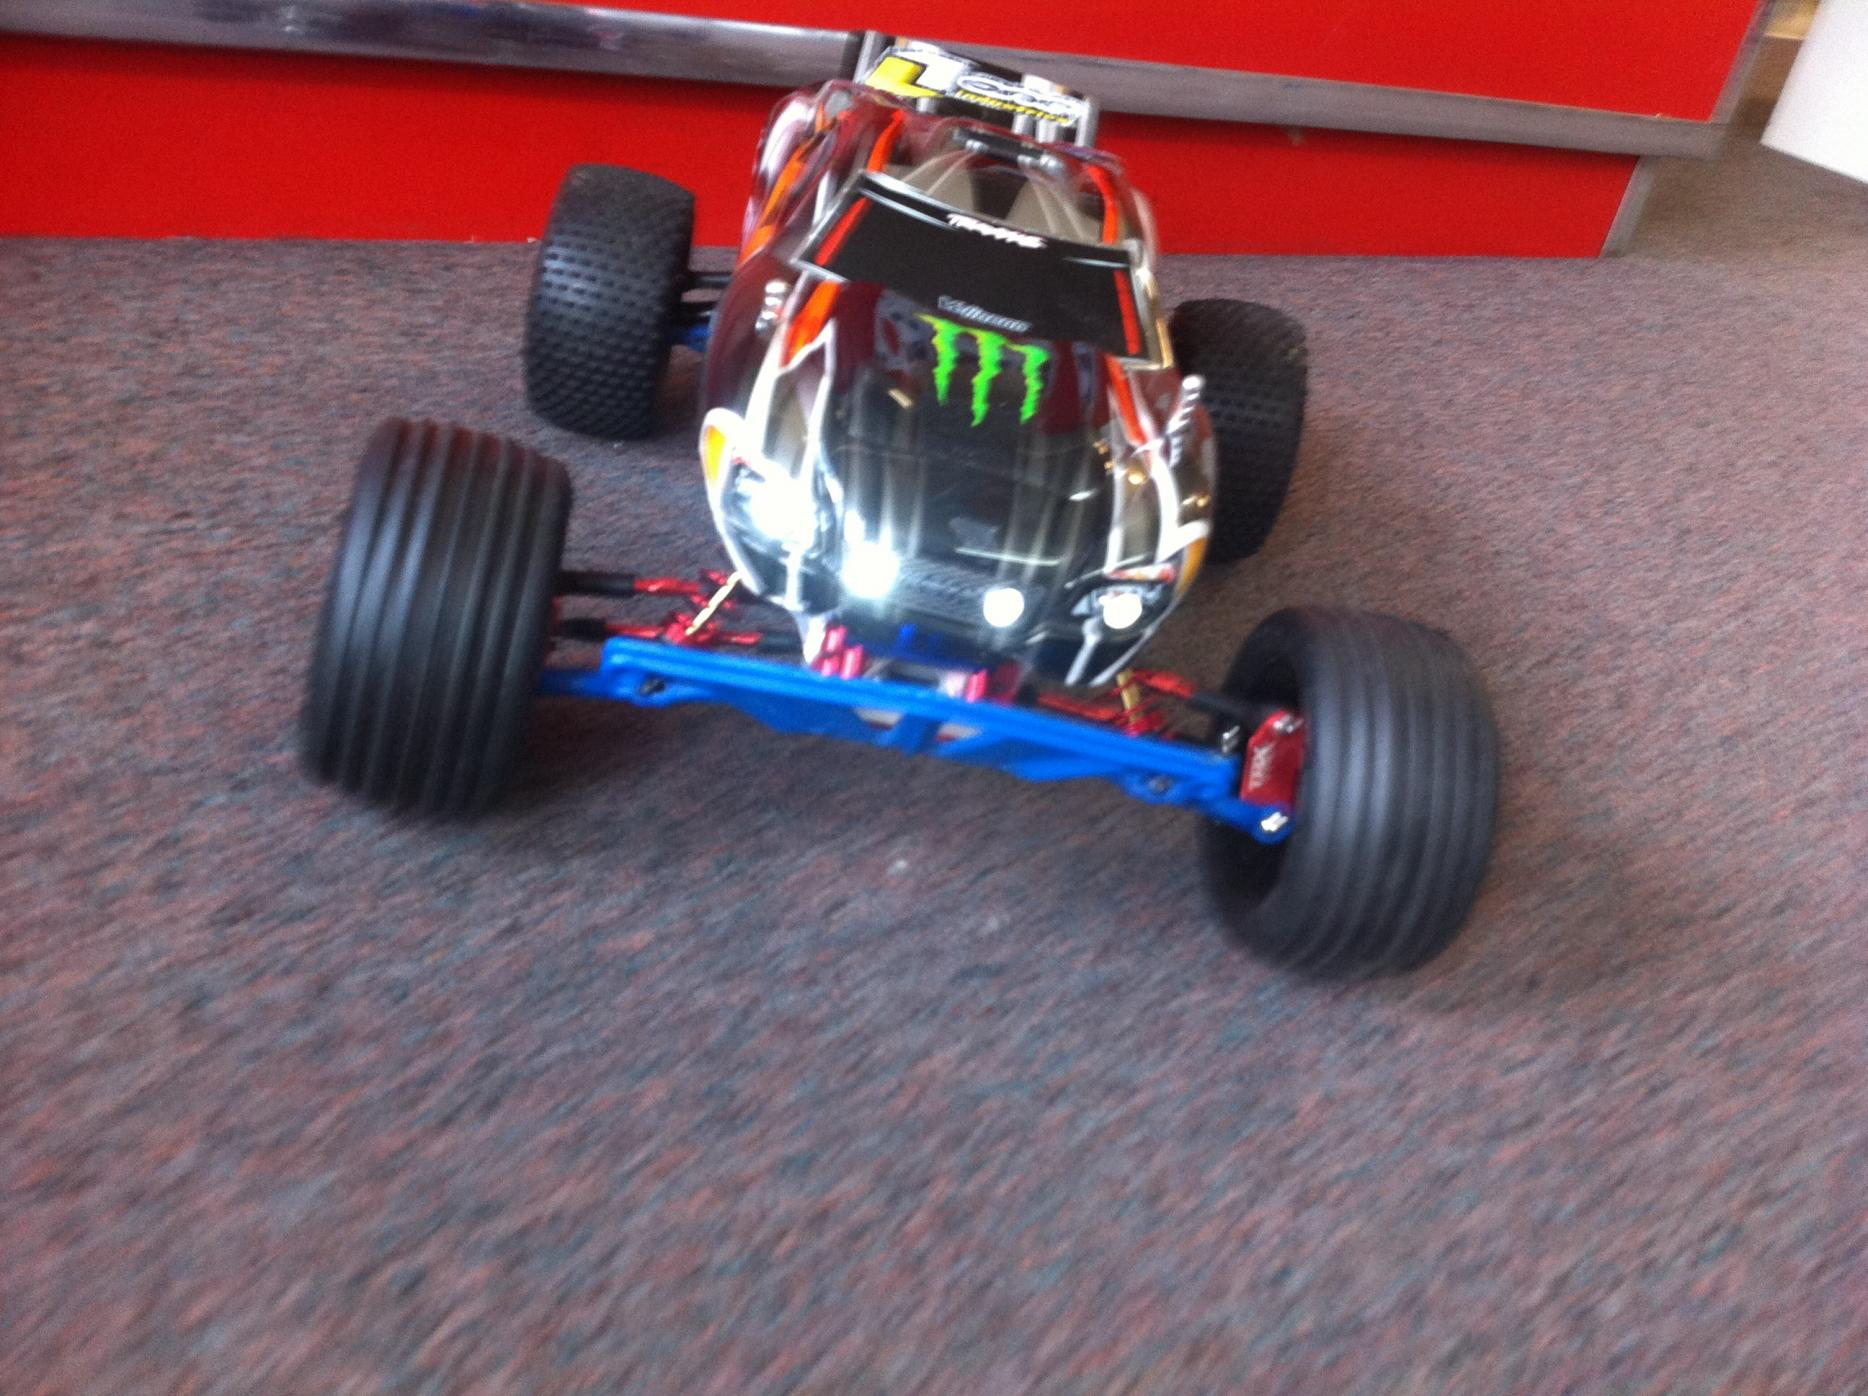 Traxxas Rustler VXL with lots of alum hopups like new image